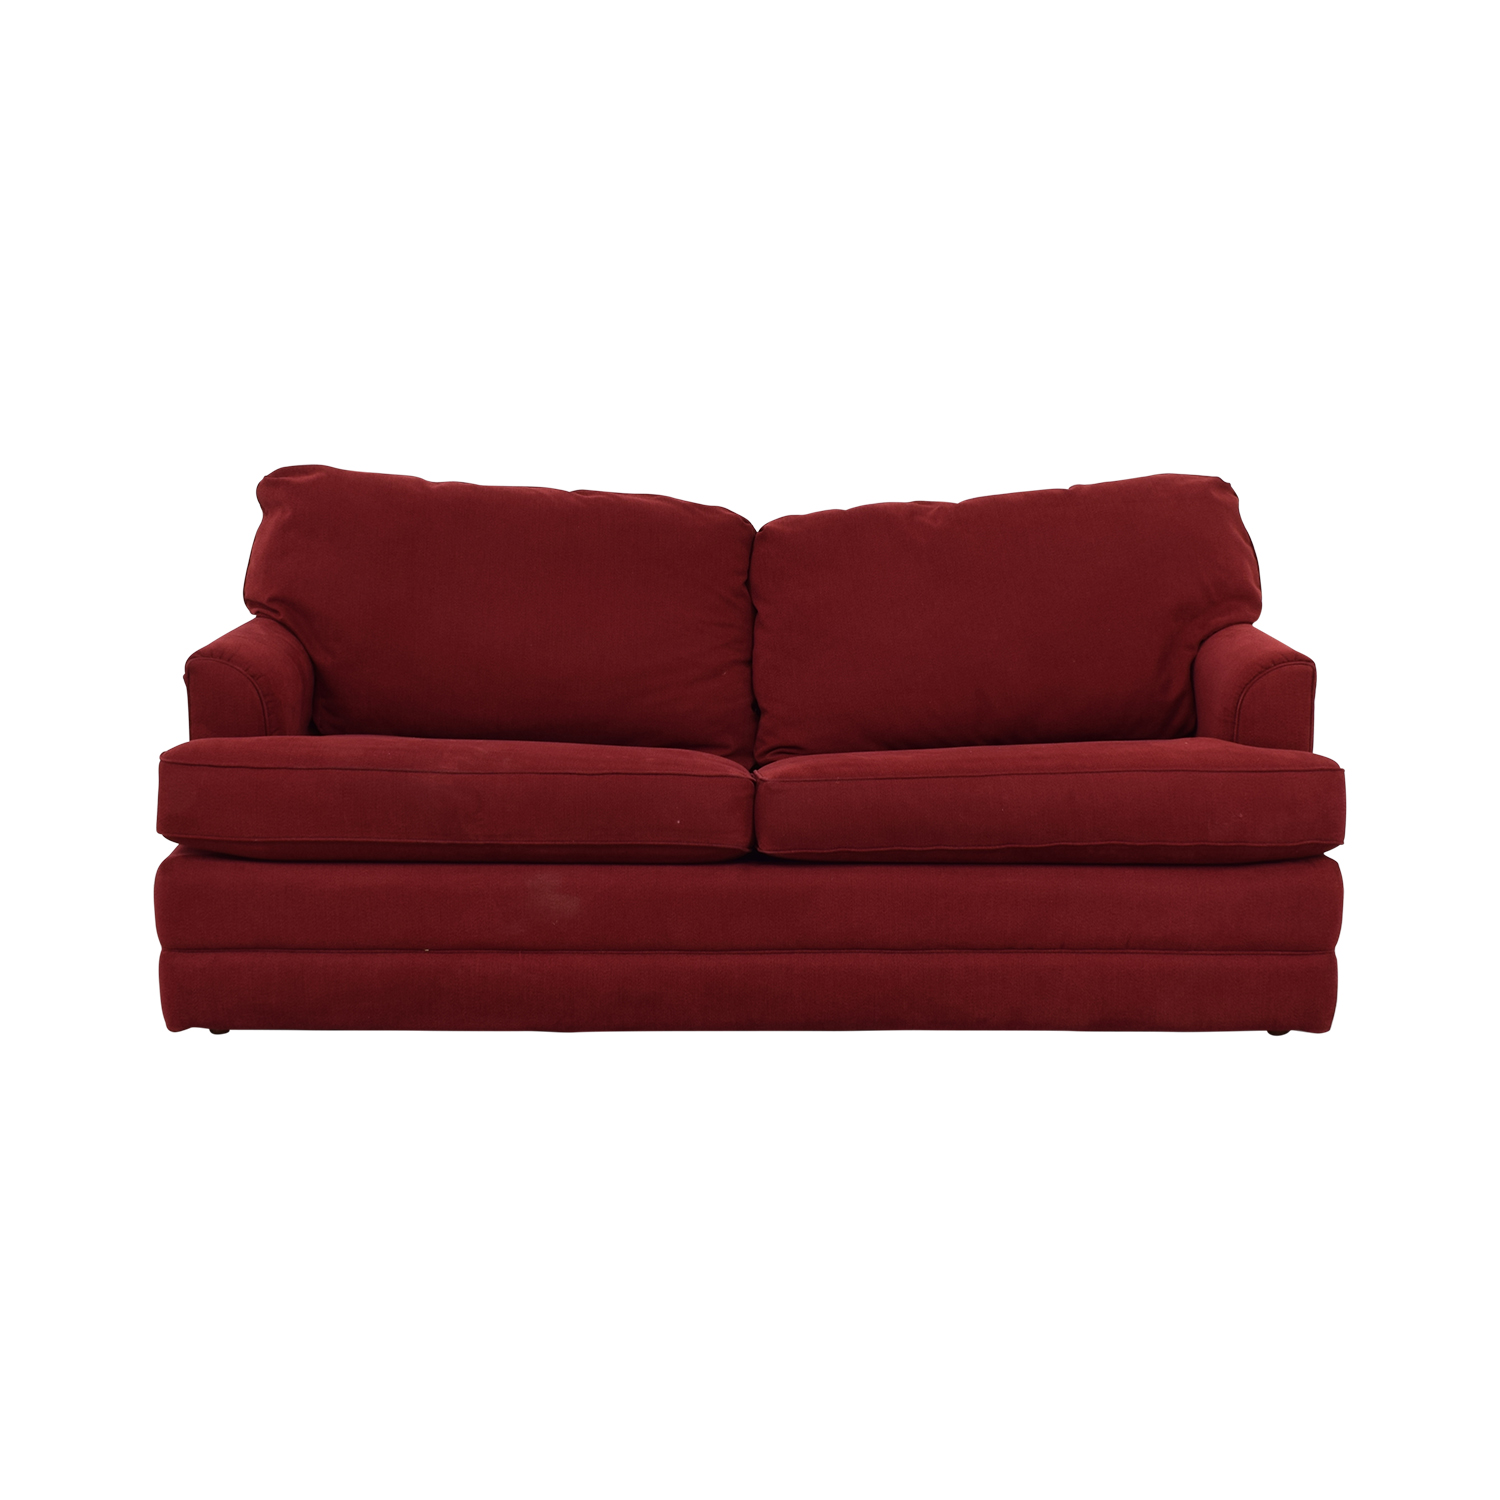 90% OFF - La-Z-Boy La-Z-Boy Red Convertible Queen Sleeper Sofa / Sofas